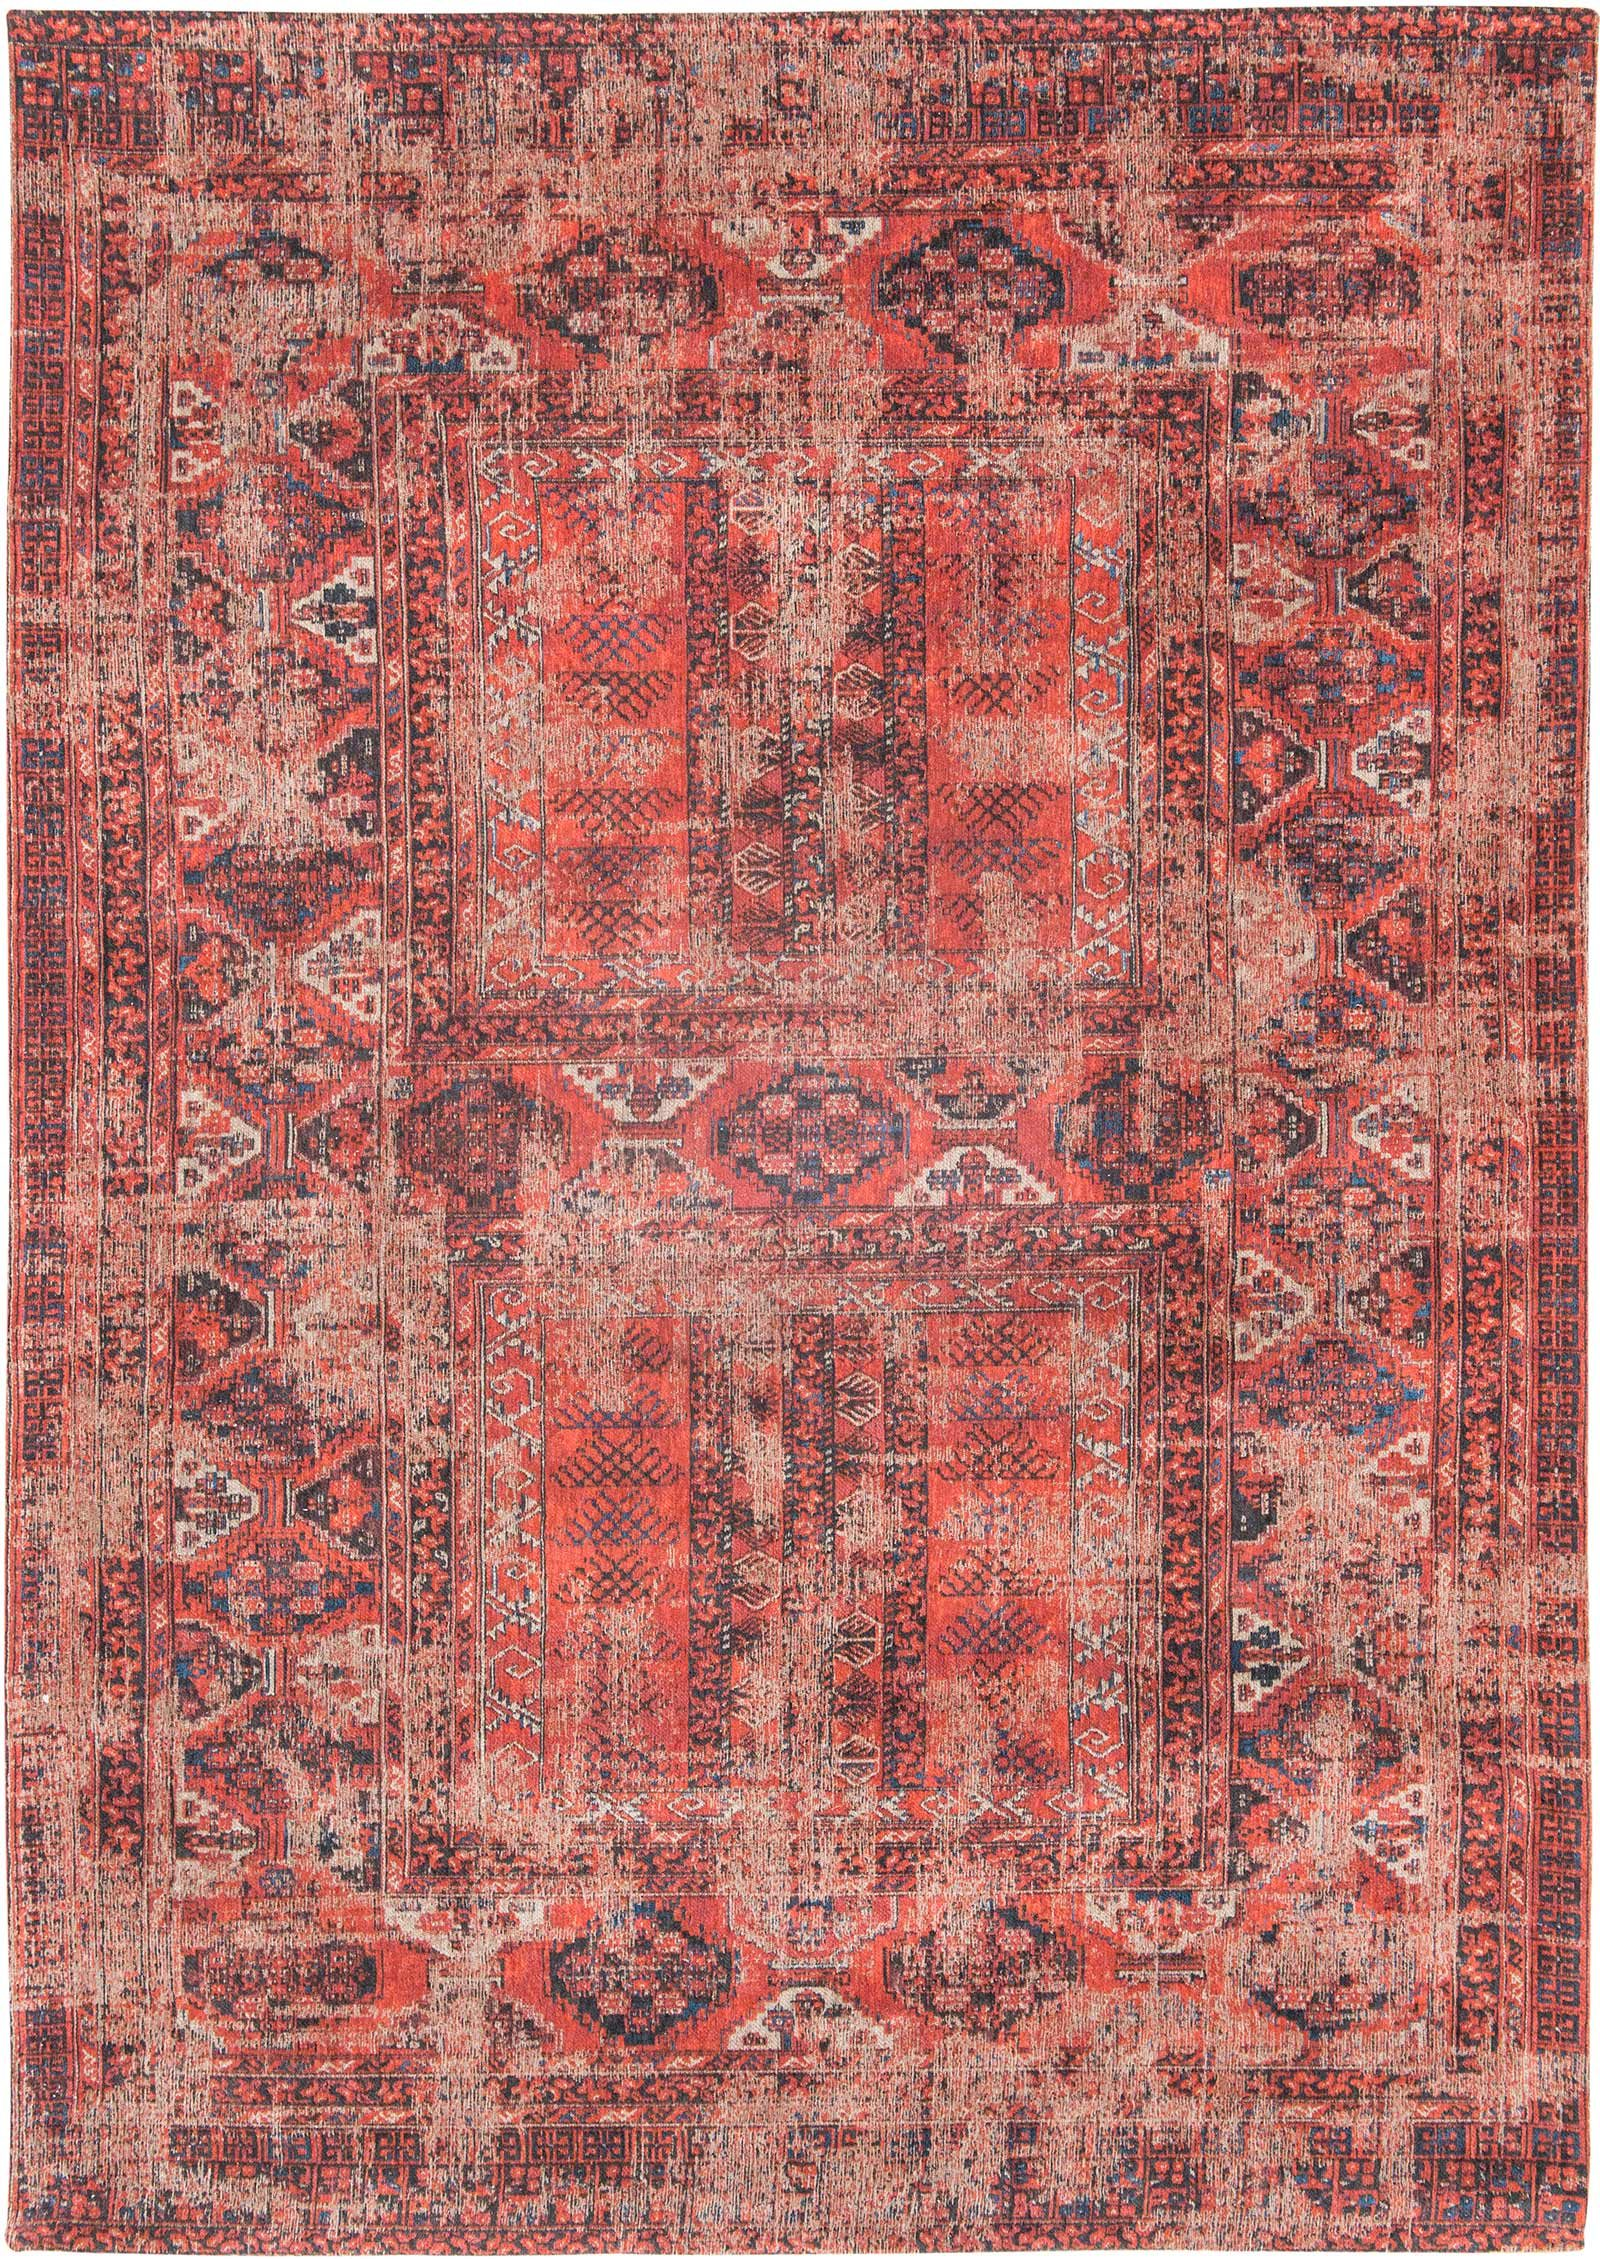 louis de poortere rug antiquarian 7 8 2 red 8719 antiquarian hadschlu design luxury rug shop uk. Black Bedroom Furniture Sets. Home Design Ideas